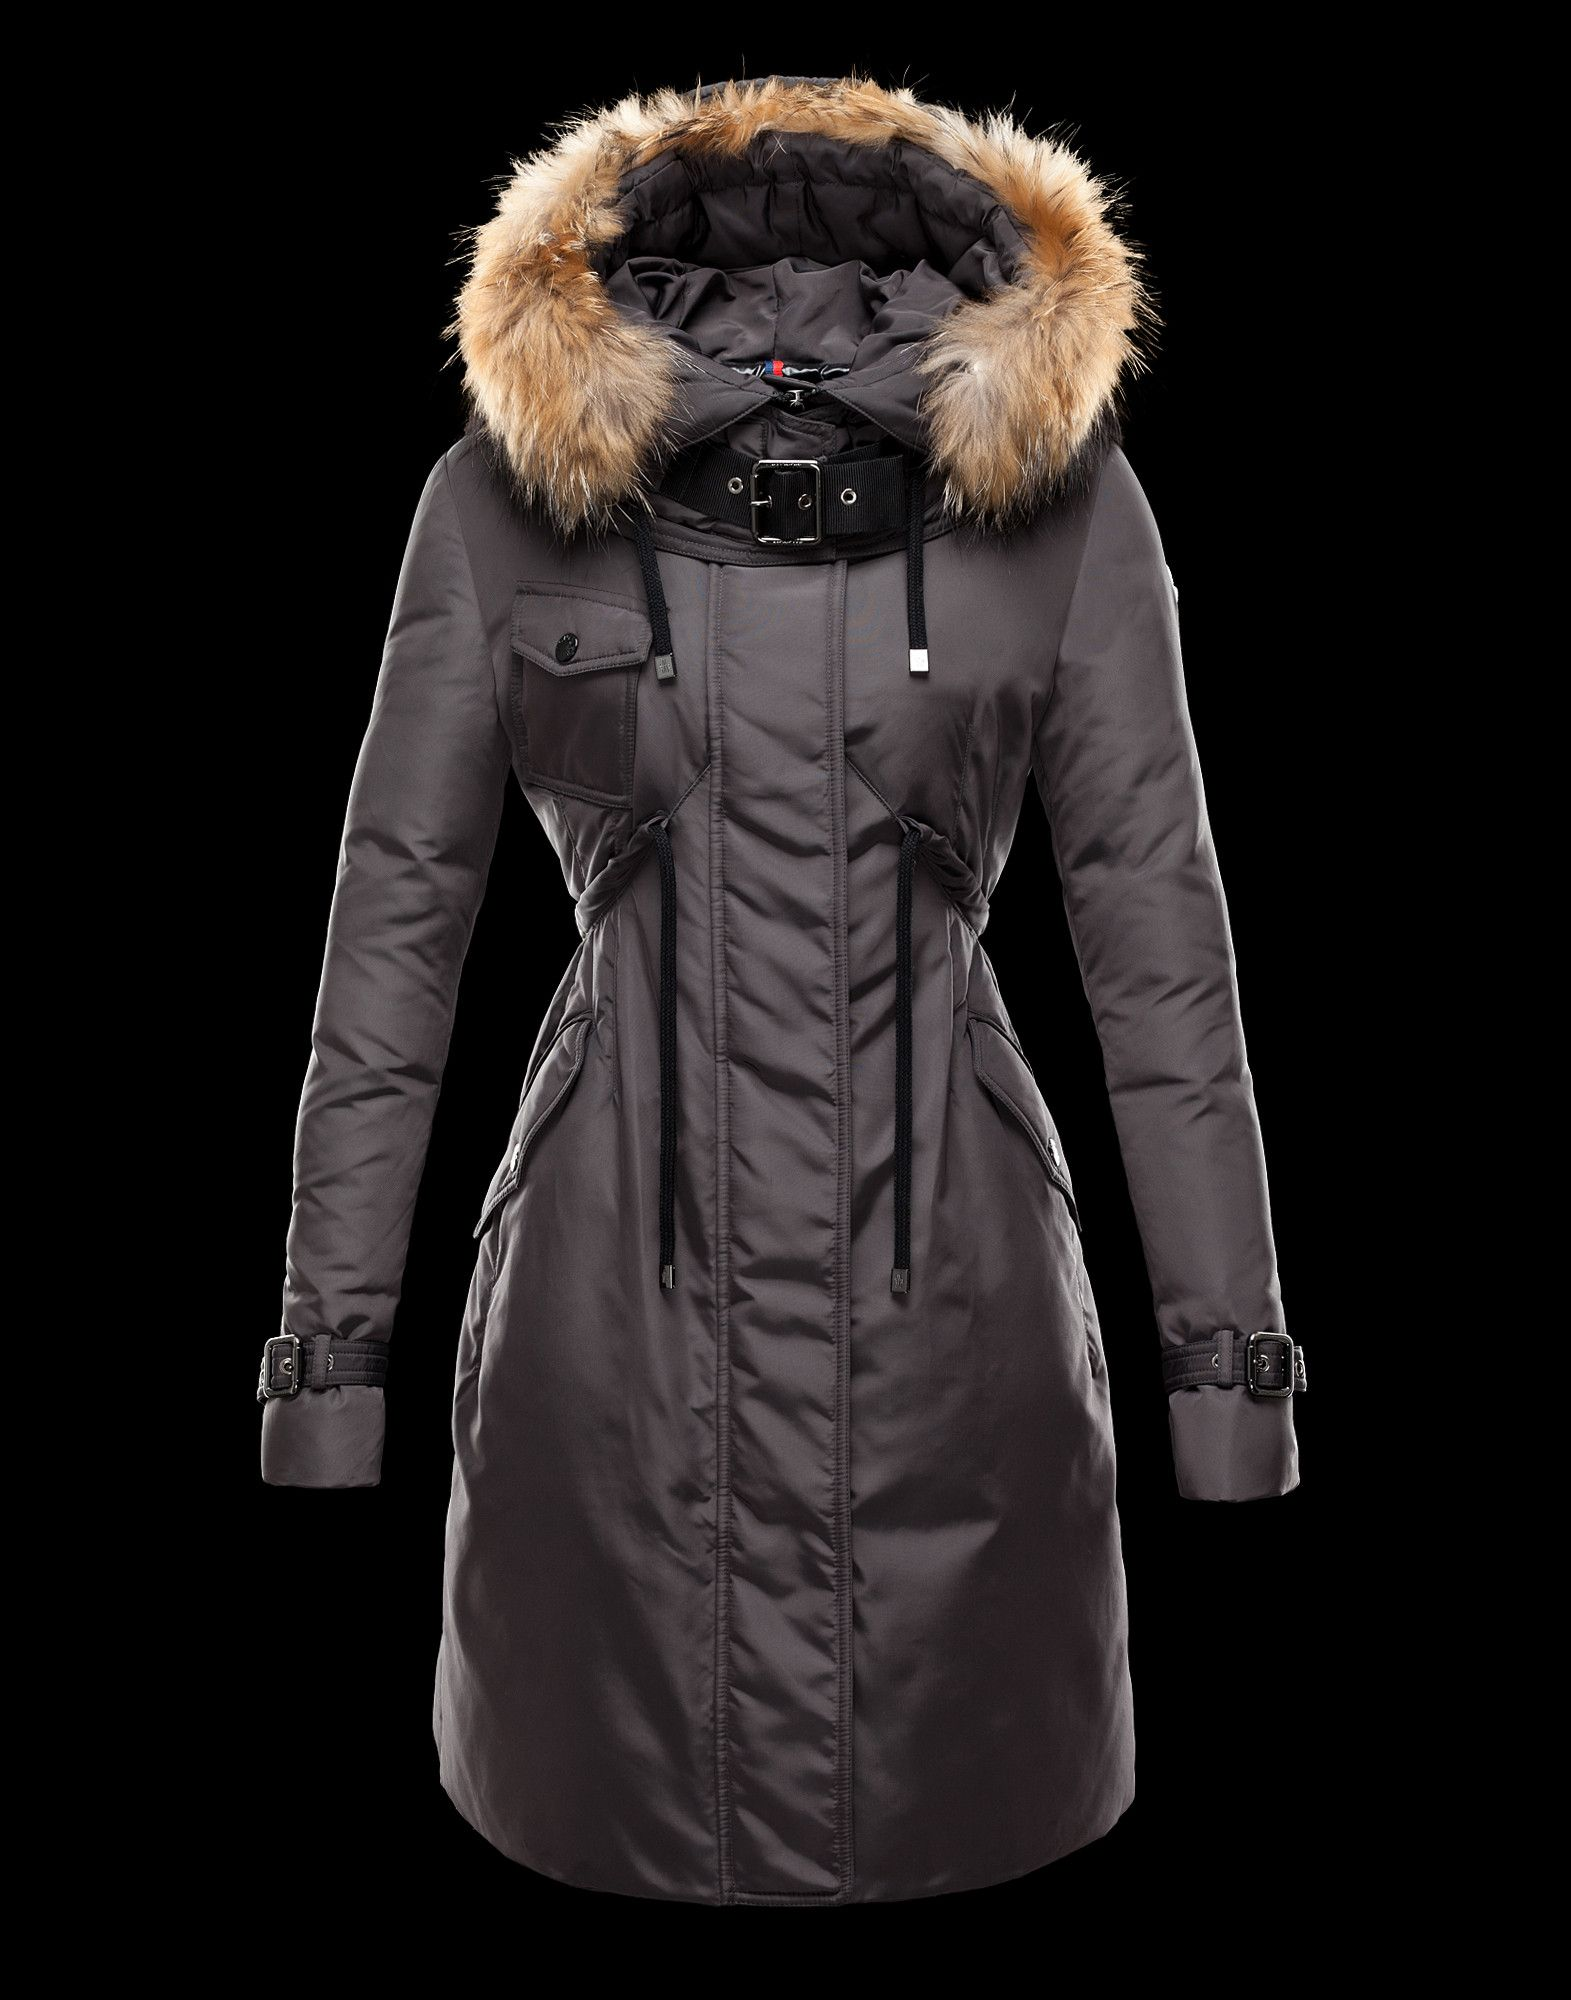 6d79c566c2b1 Coat Women Moncler - Original products on store.moncler.com